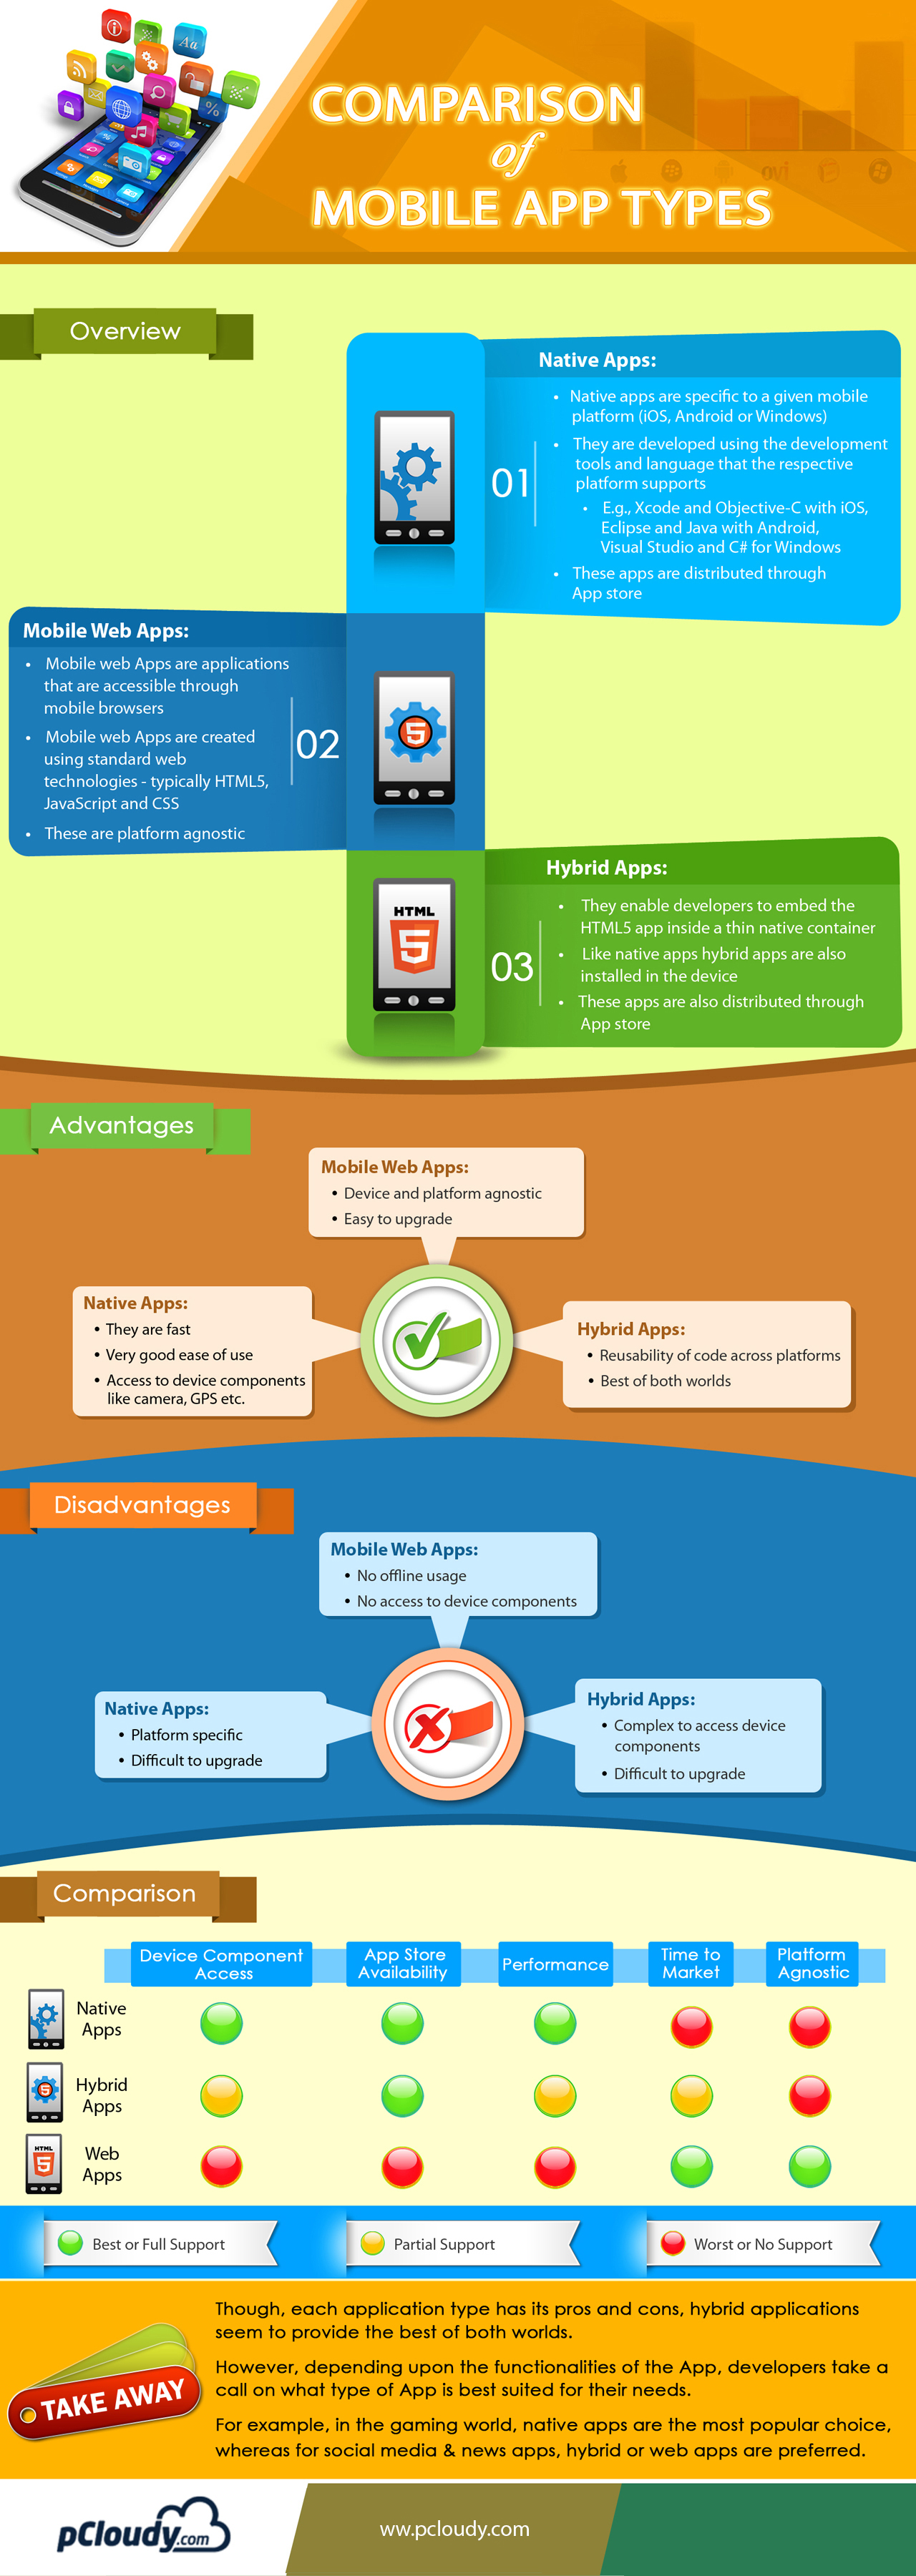 INFO_Comparison-of-Mobile-App-Types1sadfa